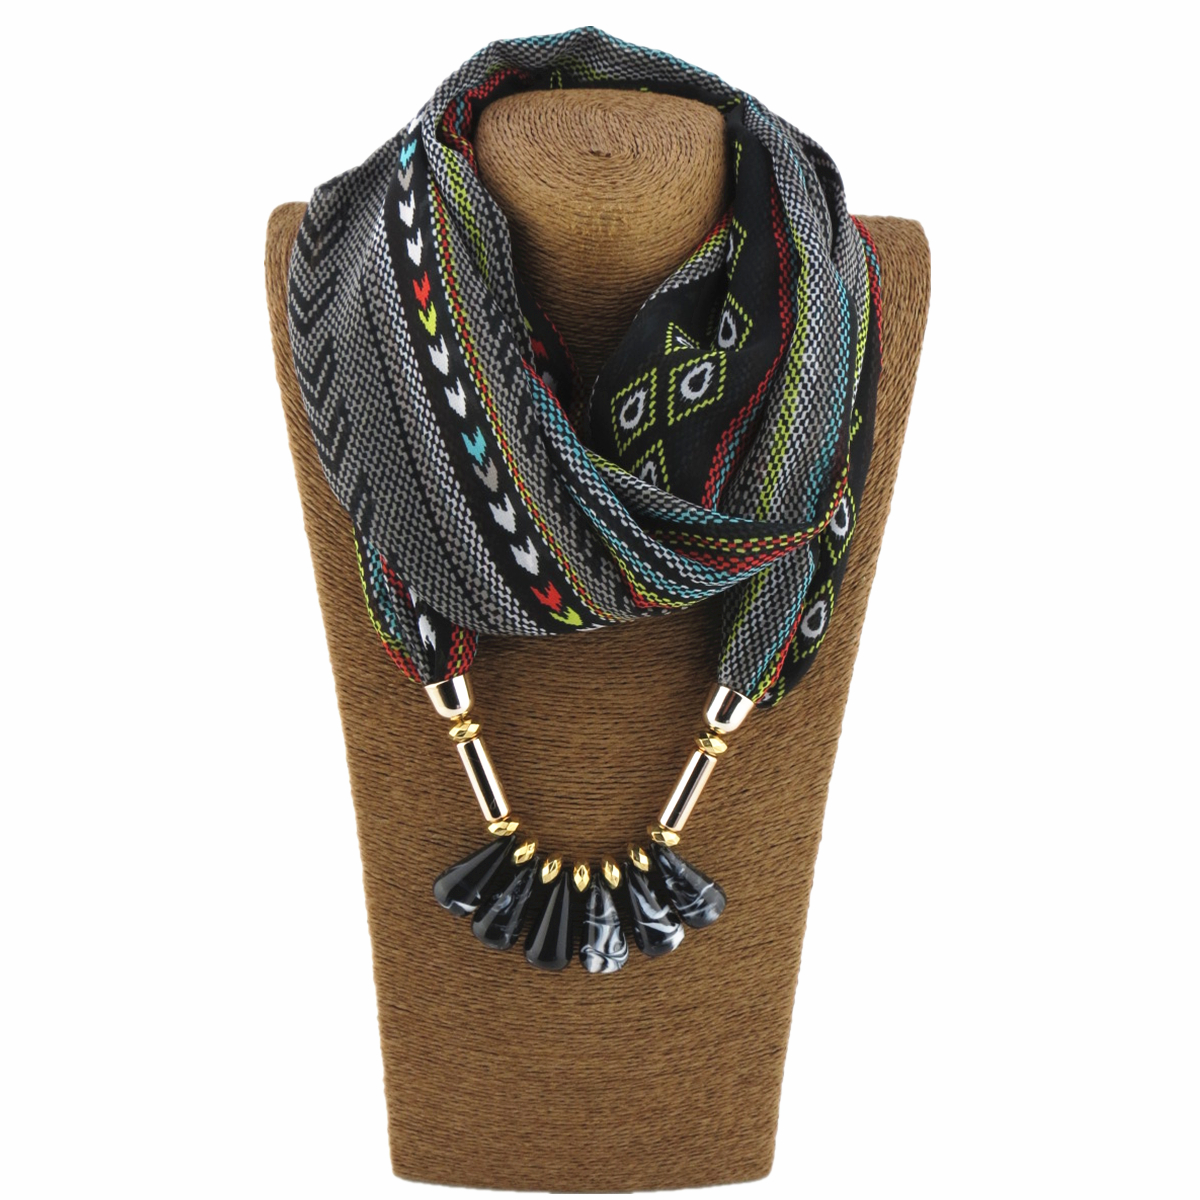 Fashion Design Style Chiffon Scarf Jewelry Necklace Resin Aleck Beads Pendant Scarf Women's Headscarf Free Shipping